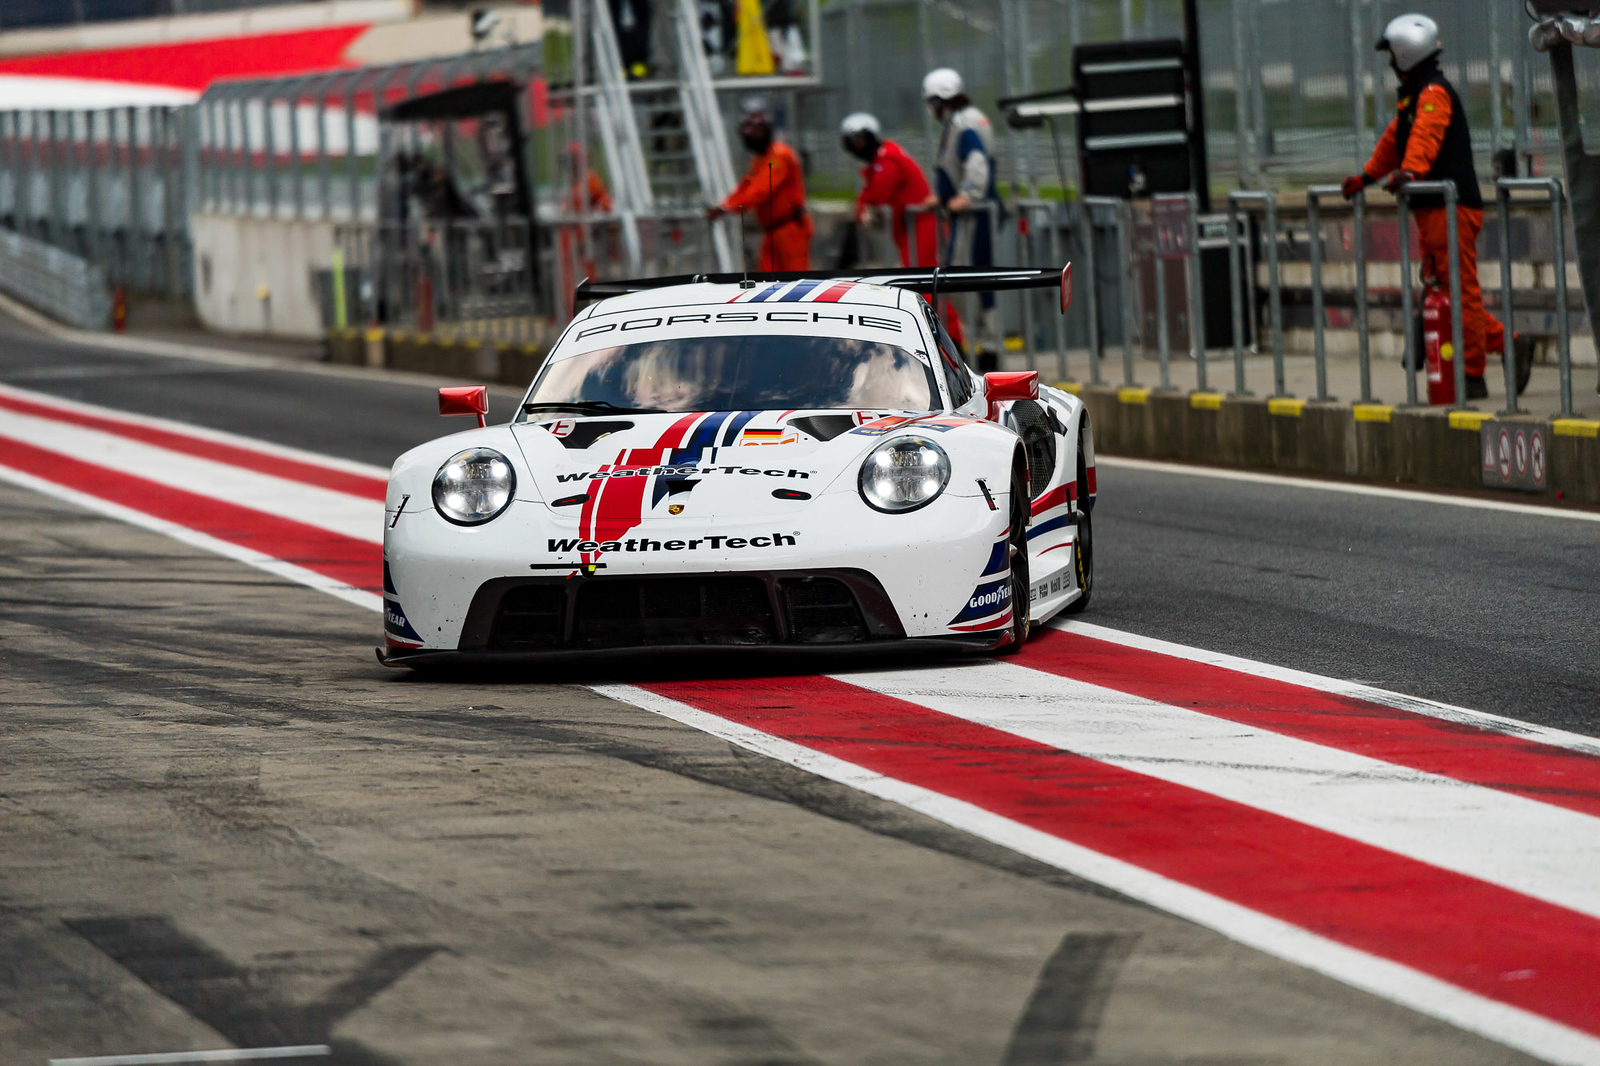 Porsche pulling into the pit.